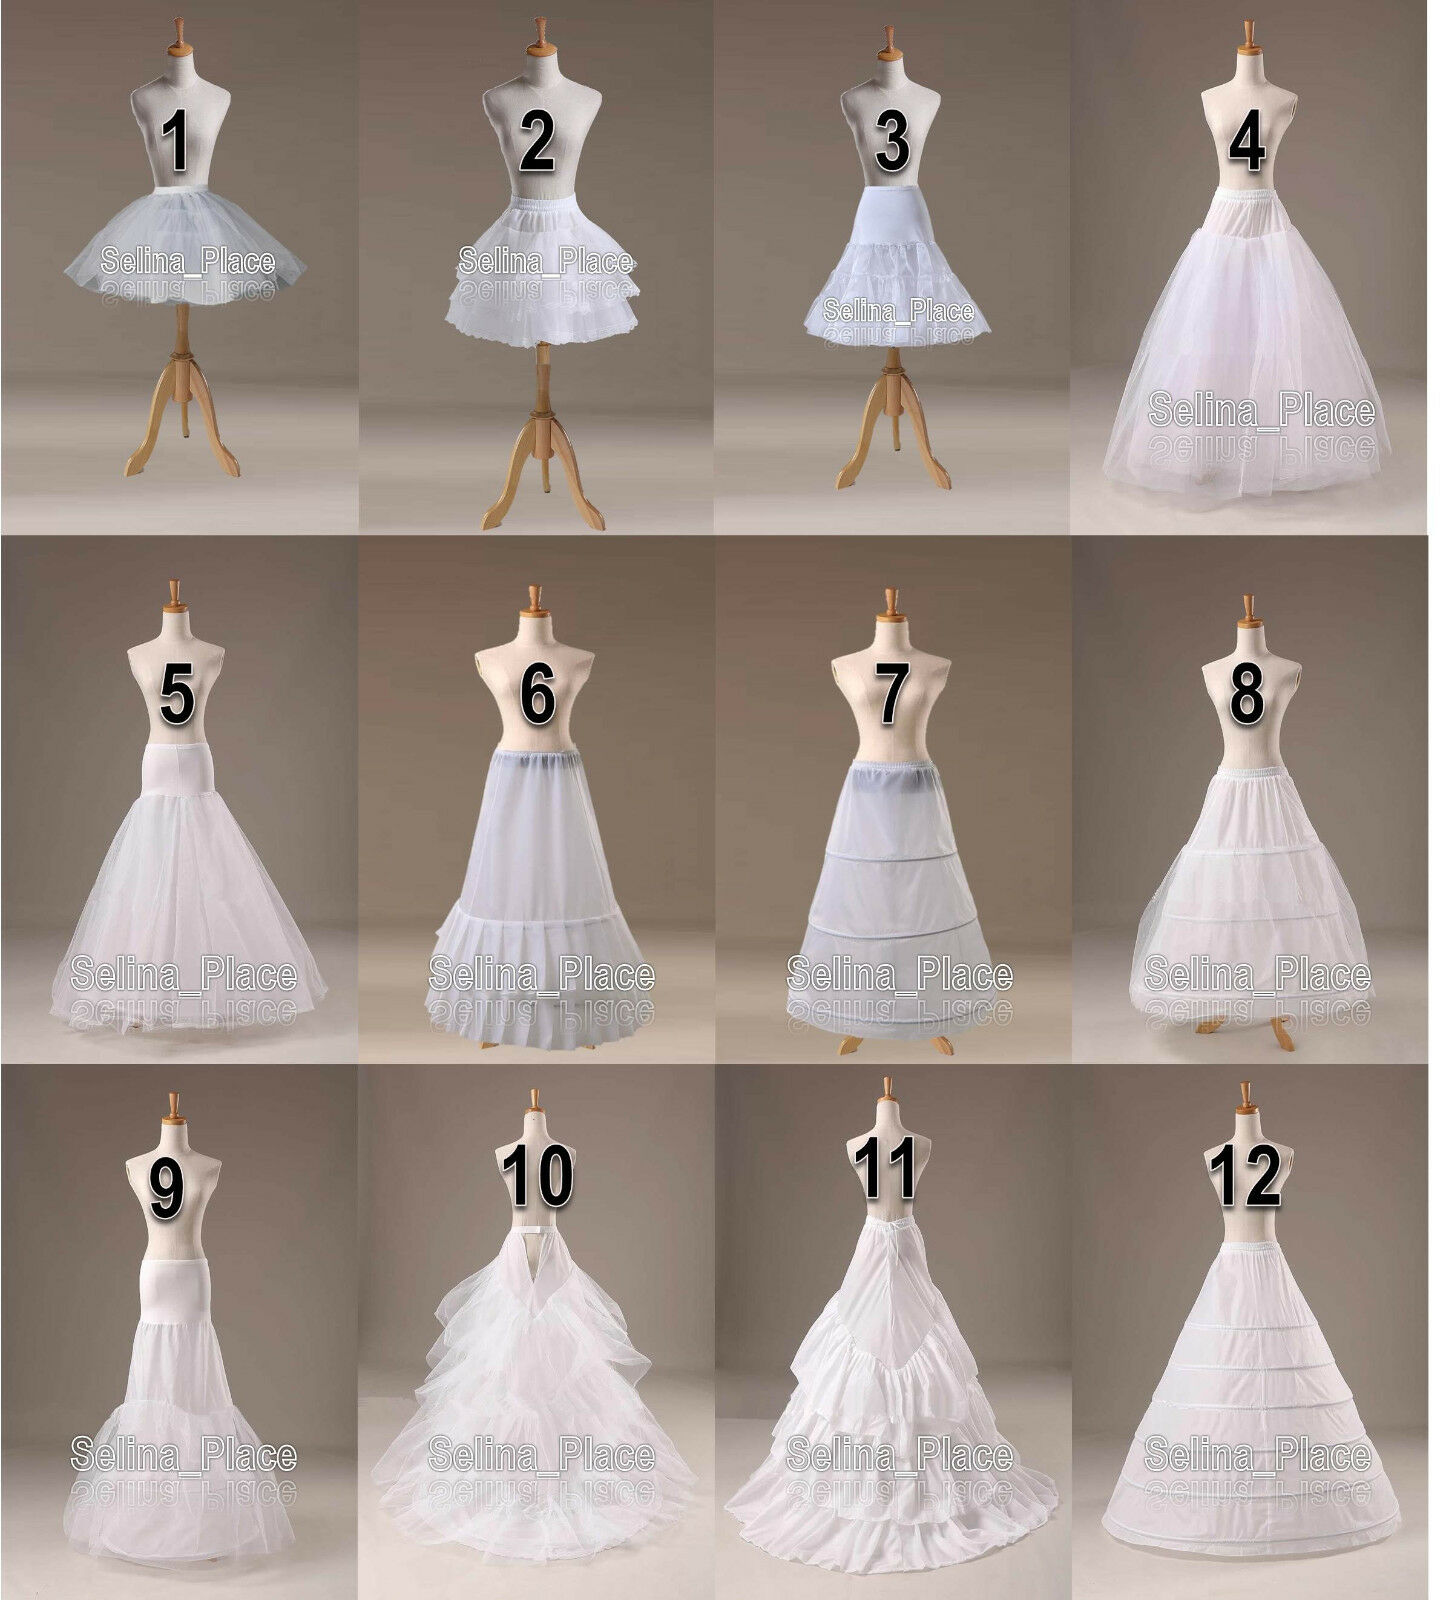 WHITE A LINE/FISHTAIL/MERIMAID Hoop Hoopless Ball Gown Crinoline ...